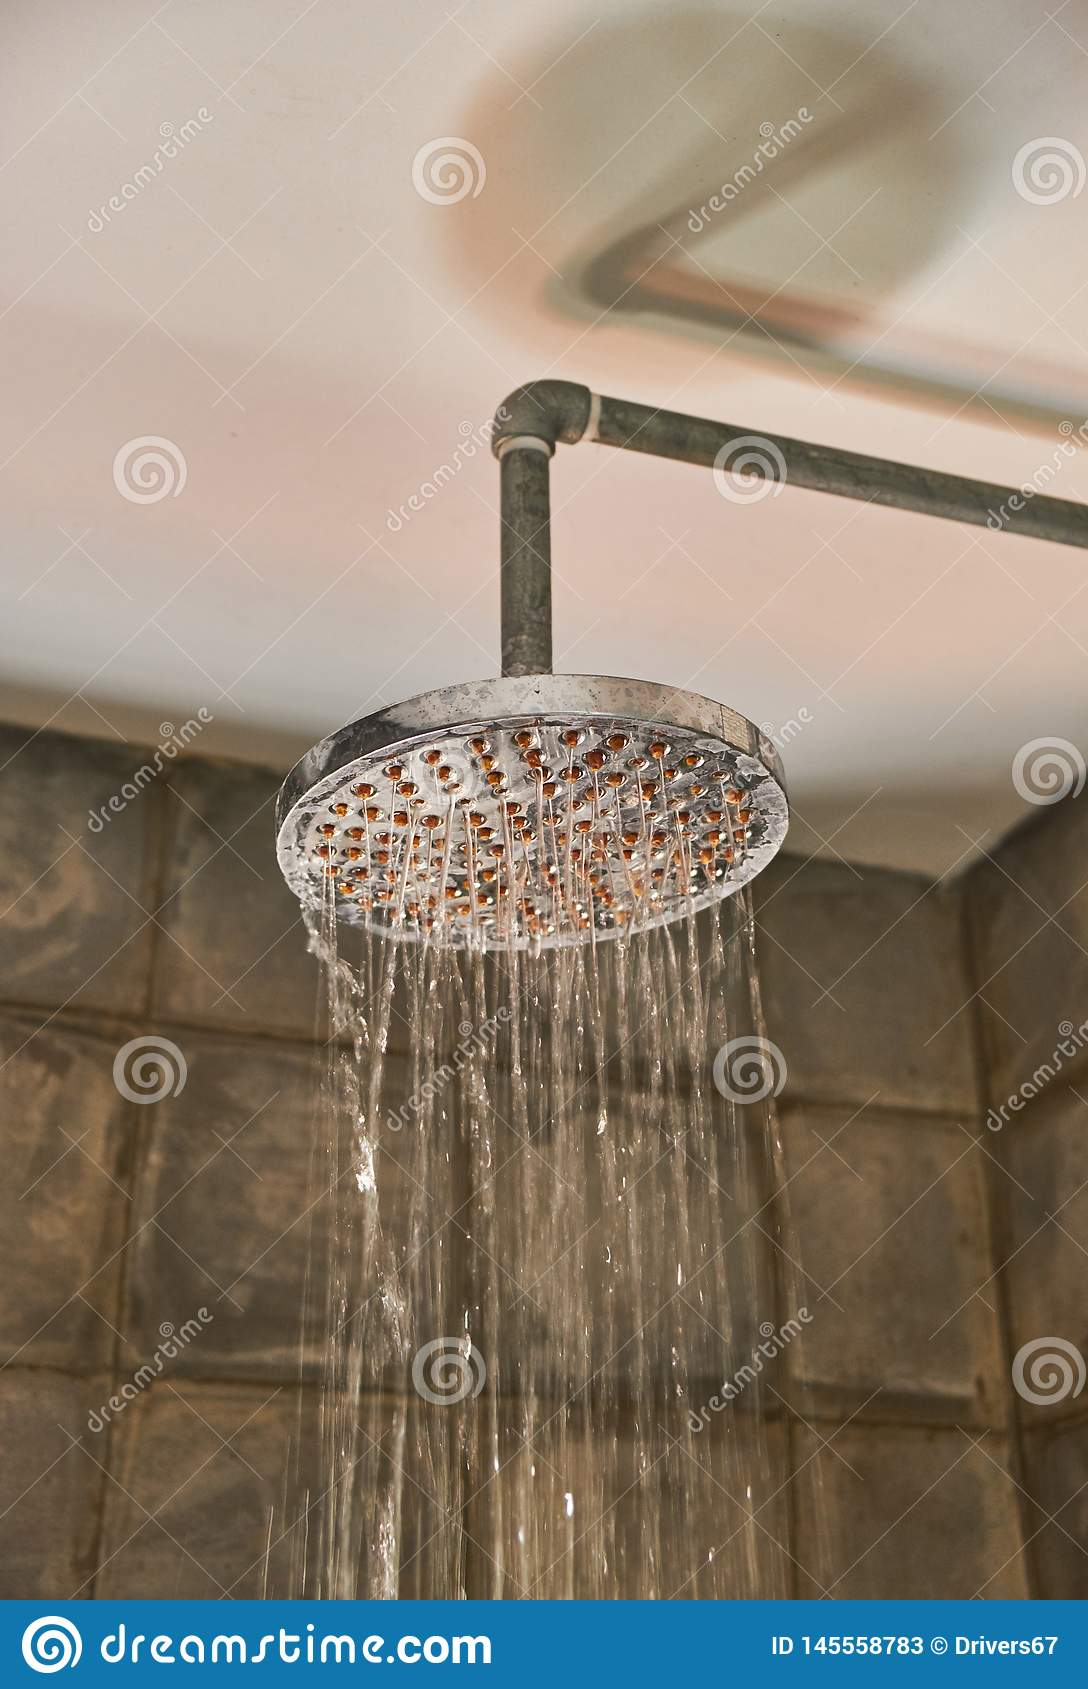 Shower in bathroom with water drops flowing